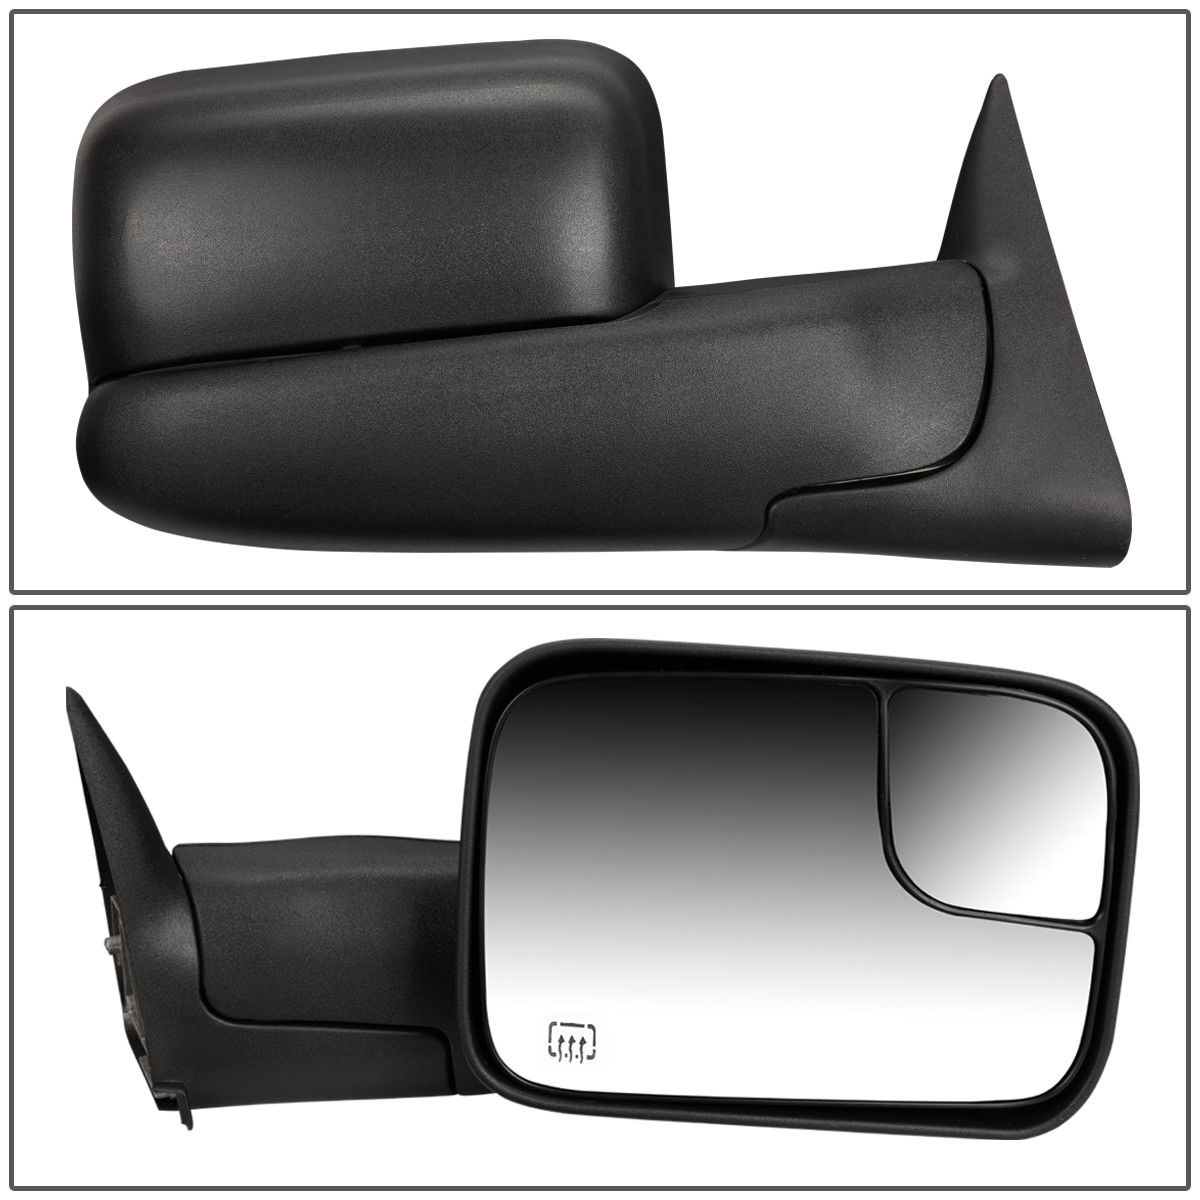 FOR 94-97 DODGE RAM LEFT SIDE POWERED ADJUSTMENT+HEATED+FLIP UP TOWING MIRROR